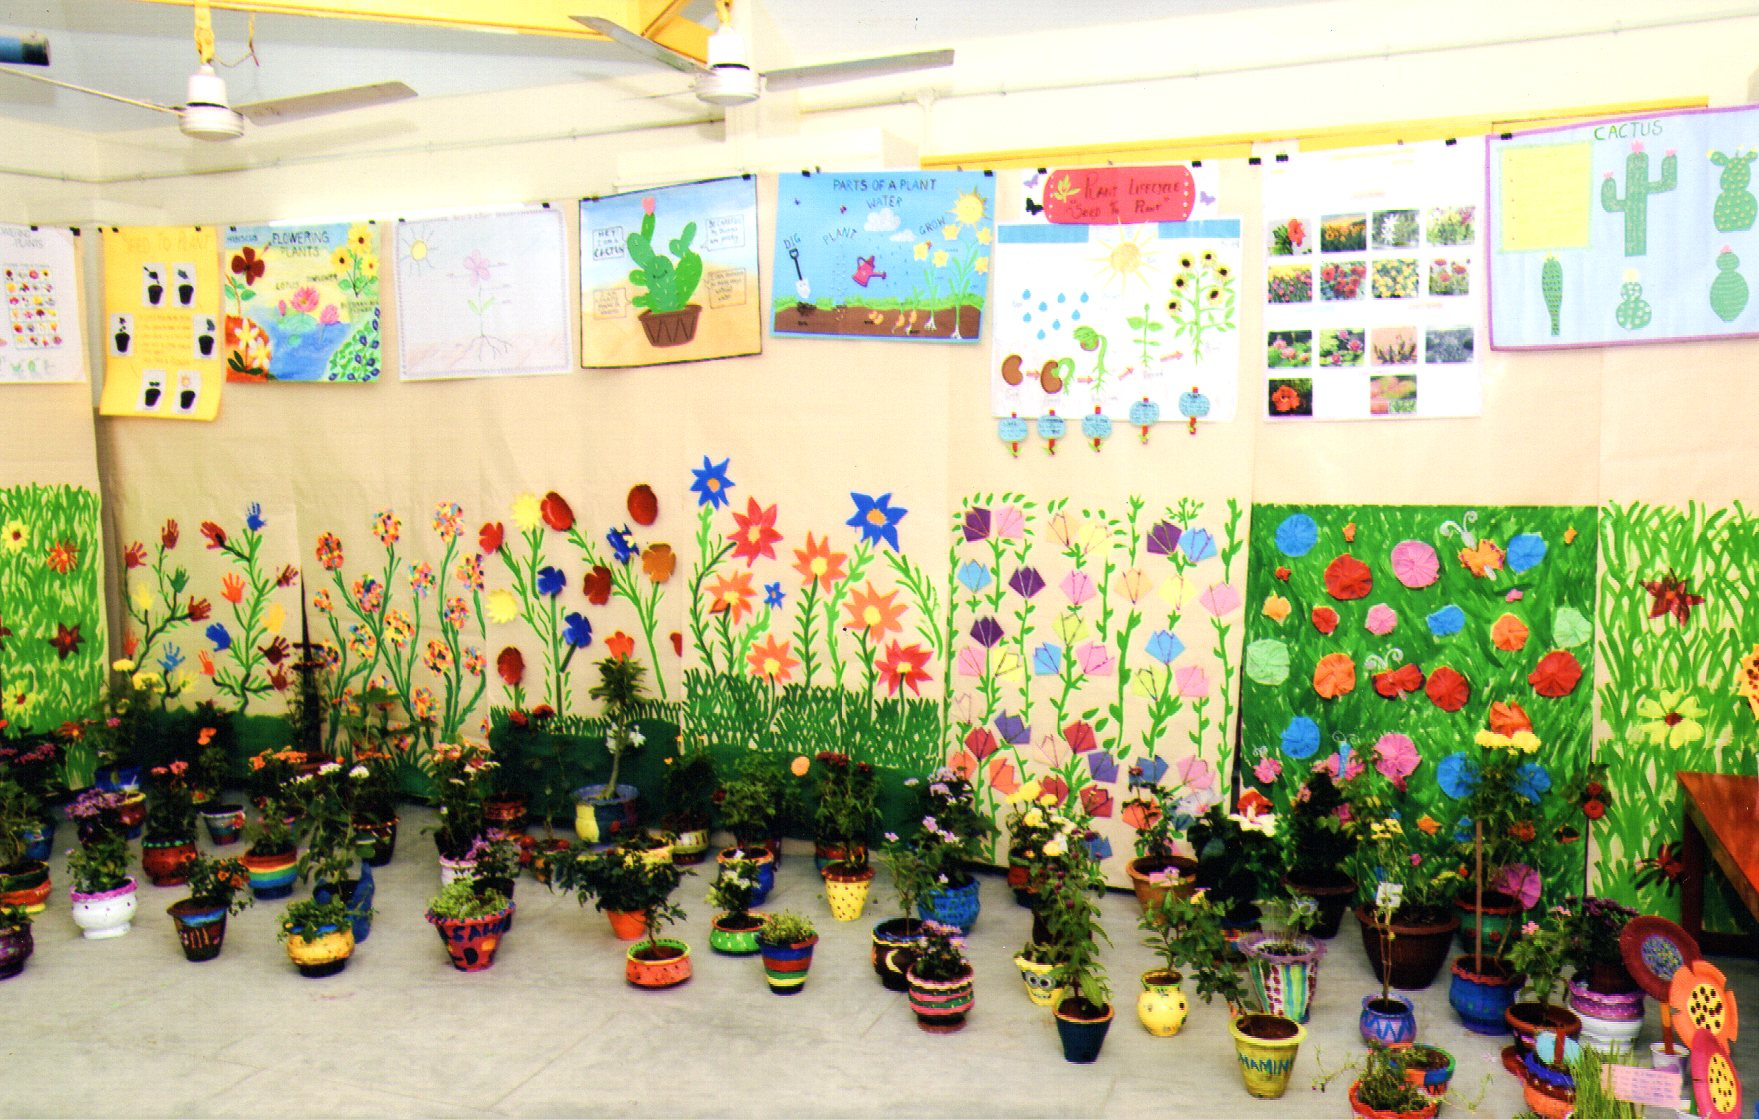 School Exhibition | Event Categories | Sishya